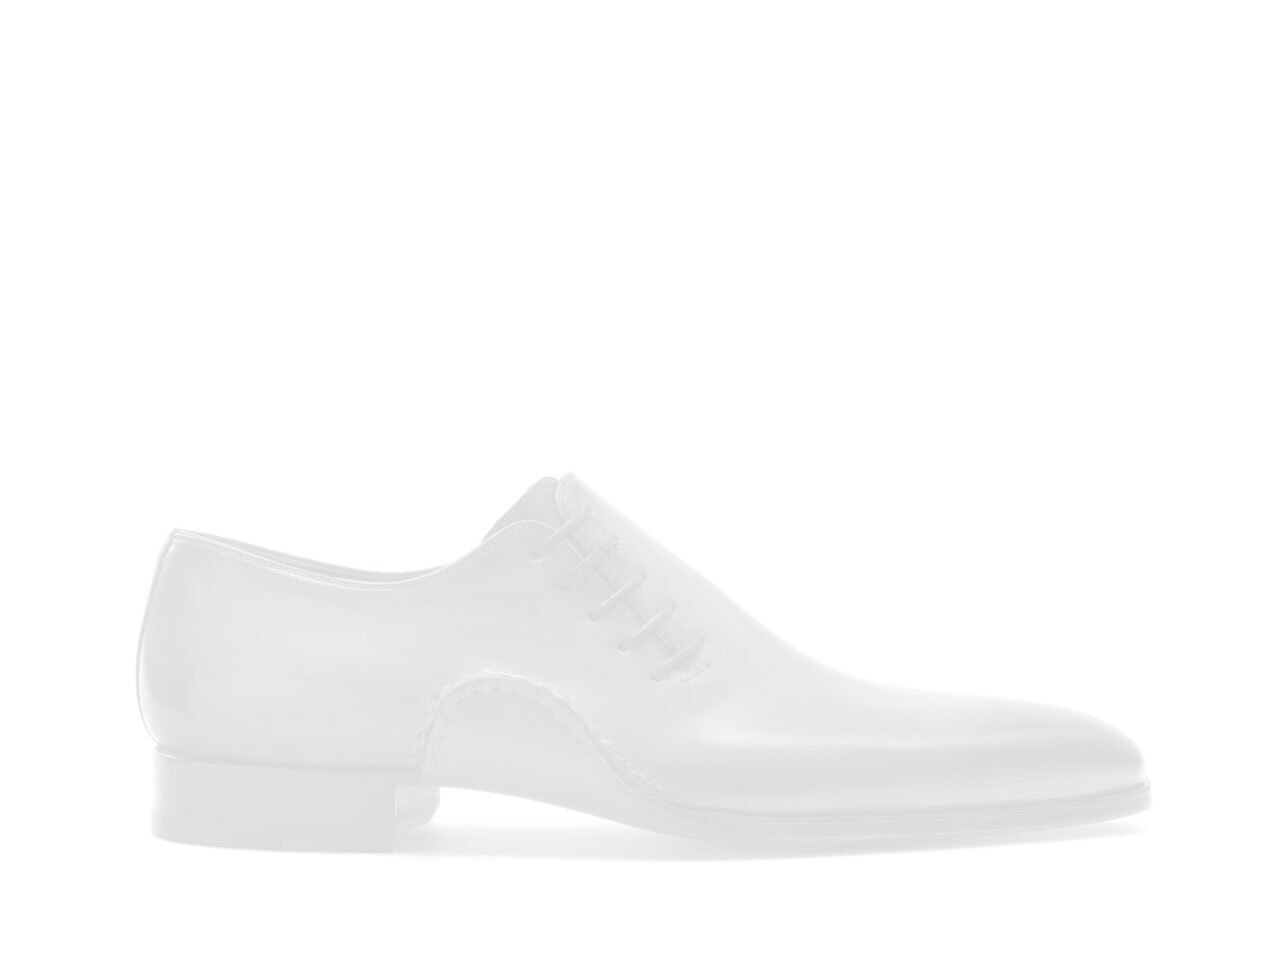 Side view of the Magnanni Elonso Lo White and Grey Men's Sneakers